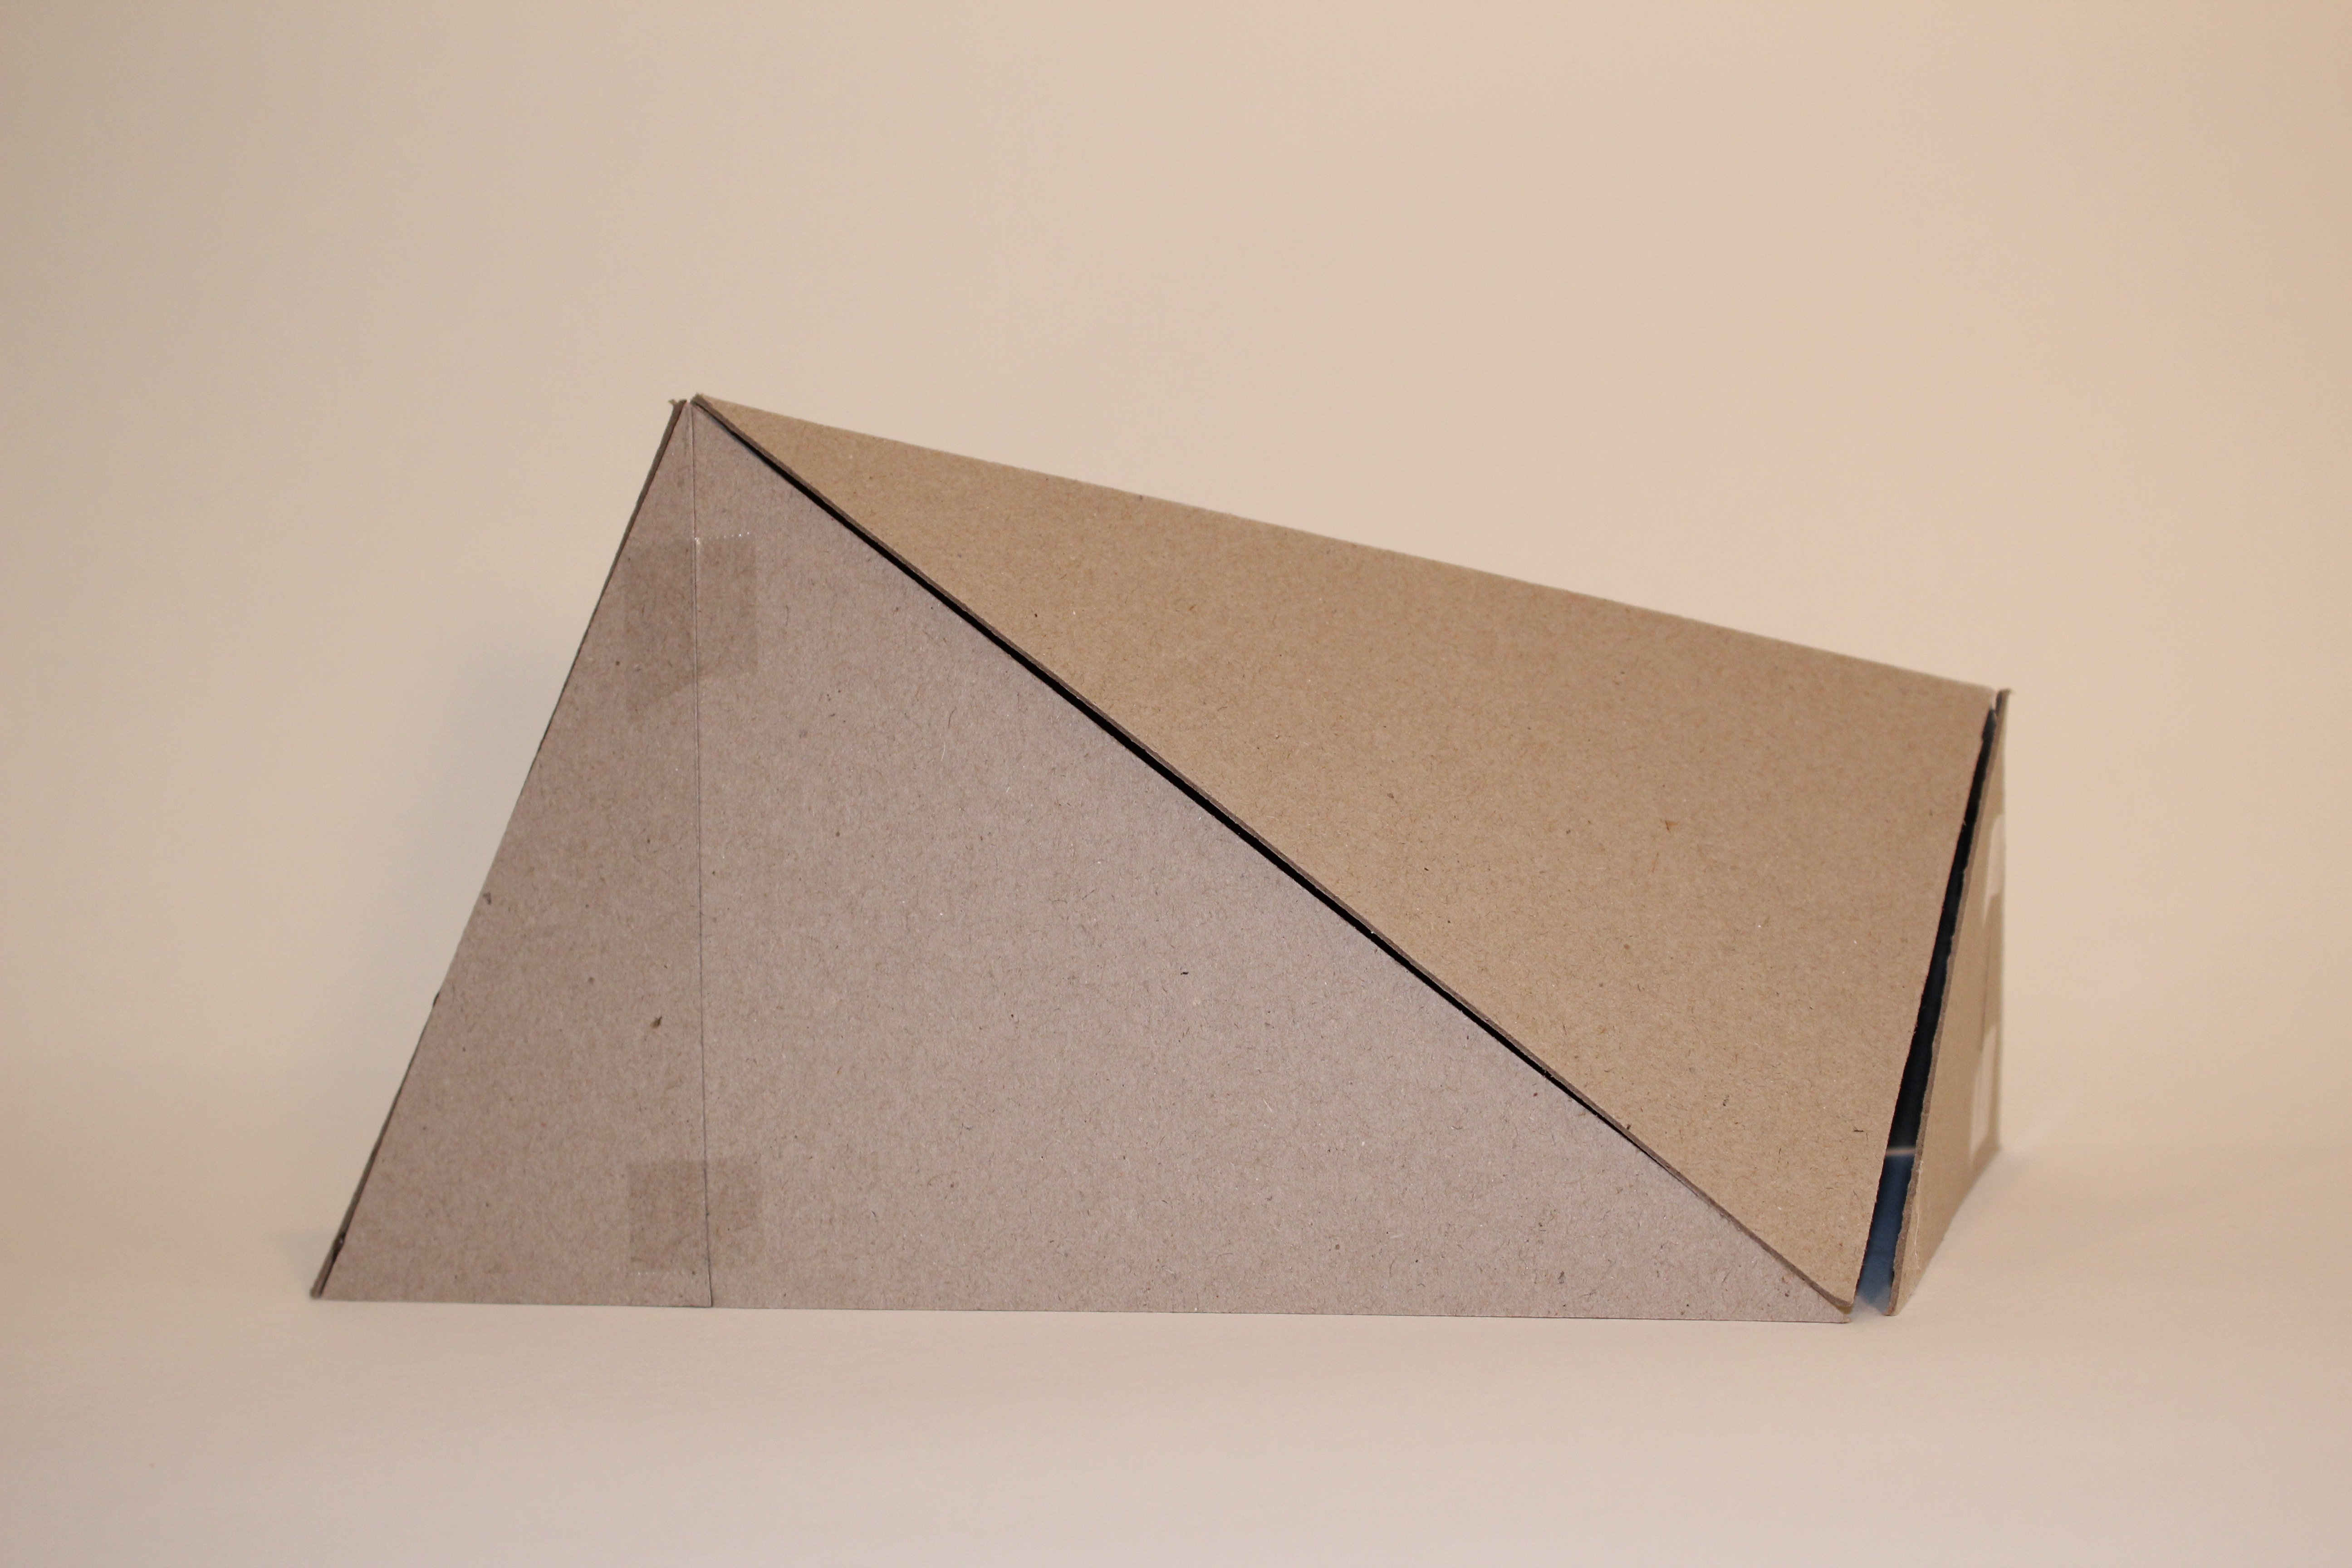 'Outside the Box' Project - View A